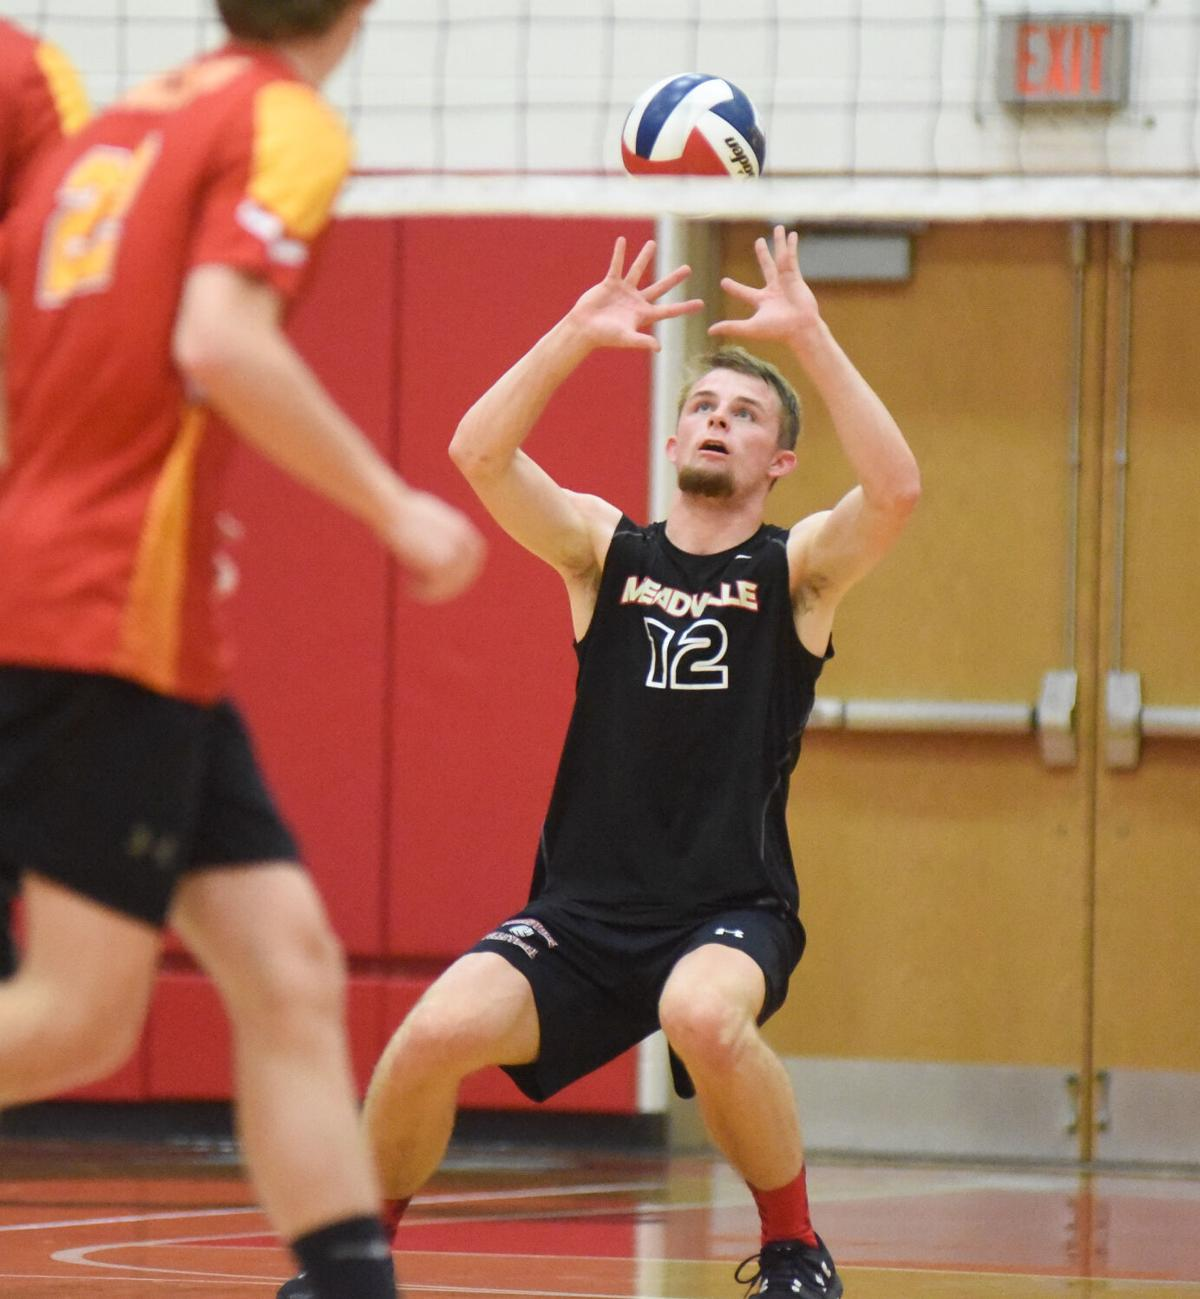 PIAA Playoffs Boys Volleyball - Meadville vs. North Catholic